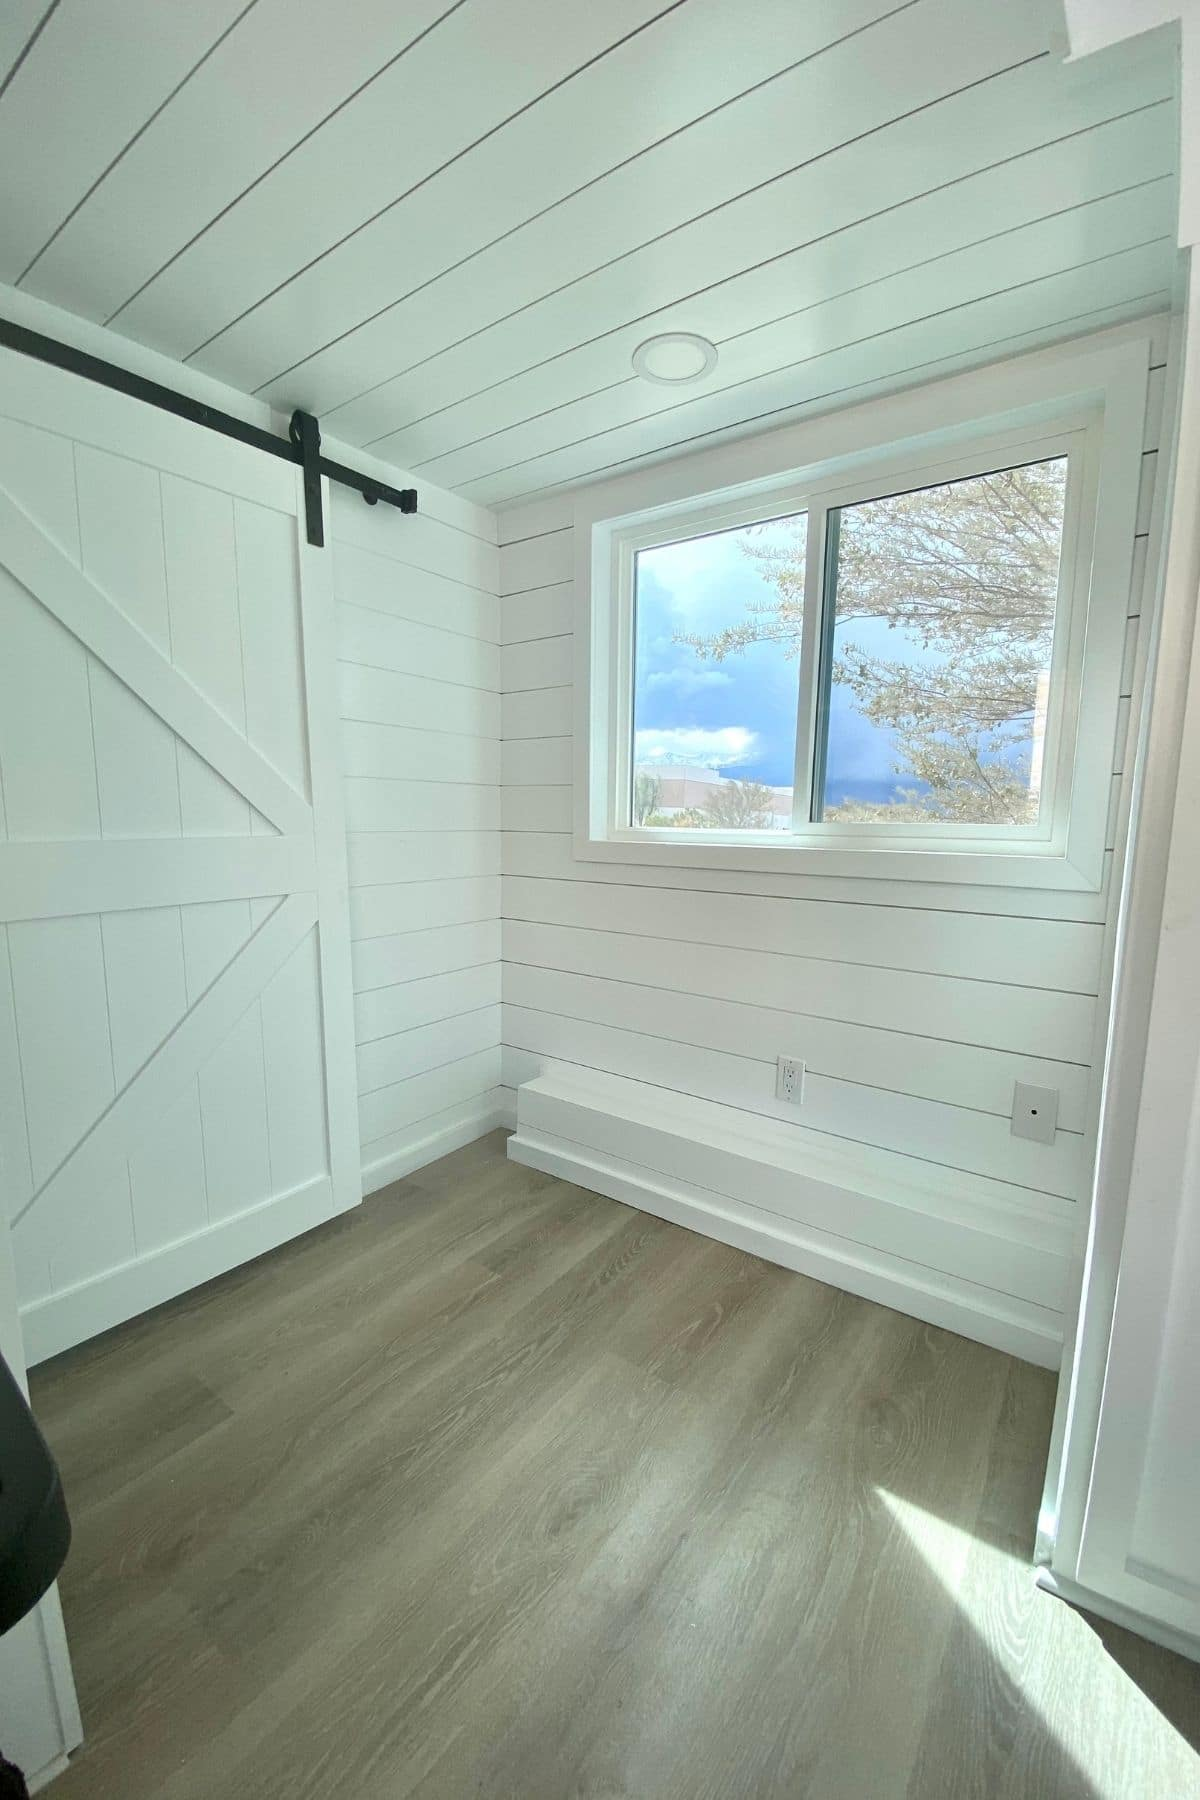 White barn door on right side of image with two windows on white wall to left